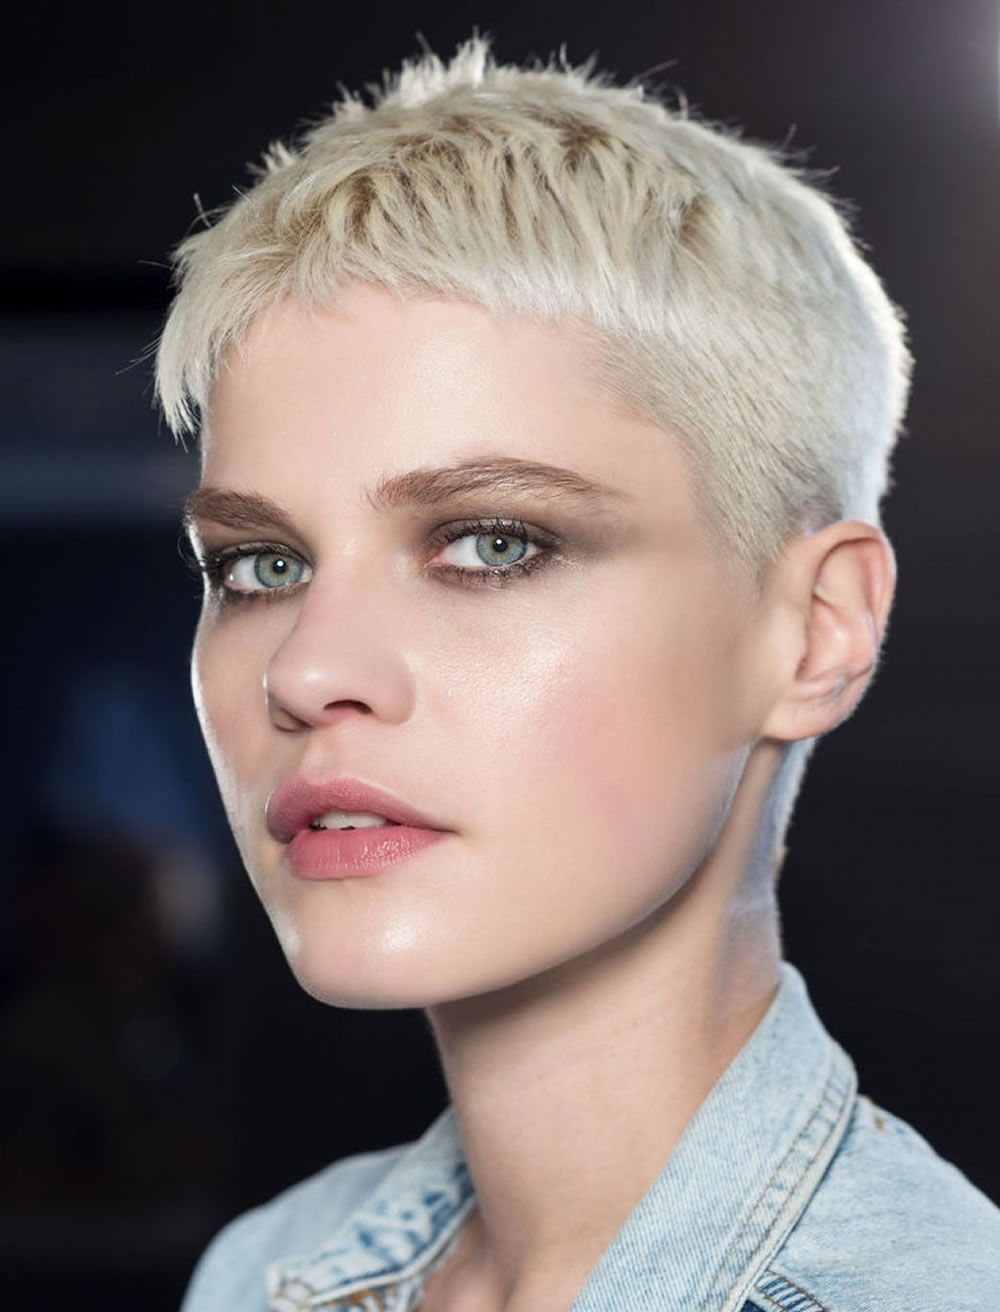 Showing Photos Of Short Bangs Pixie Hairstyles View 6 Of 15 Photos